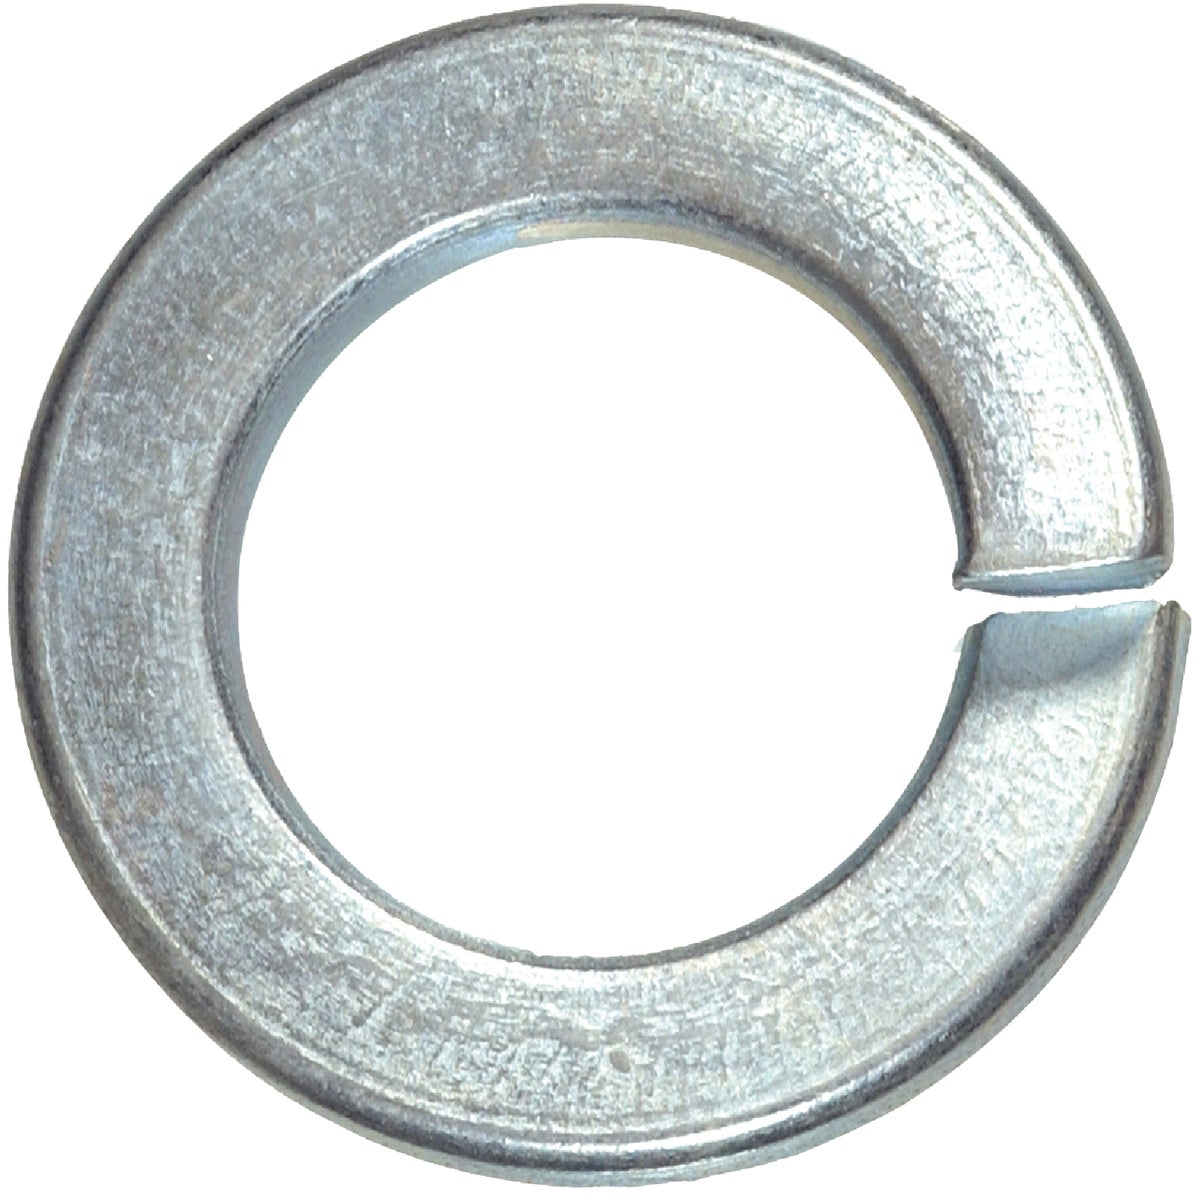 100PC #6 LOCK WASHER - 300009 by Hillman Fastener